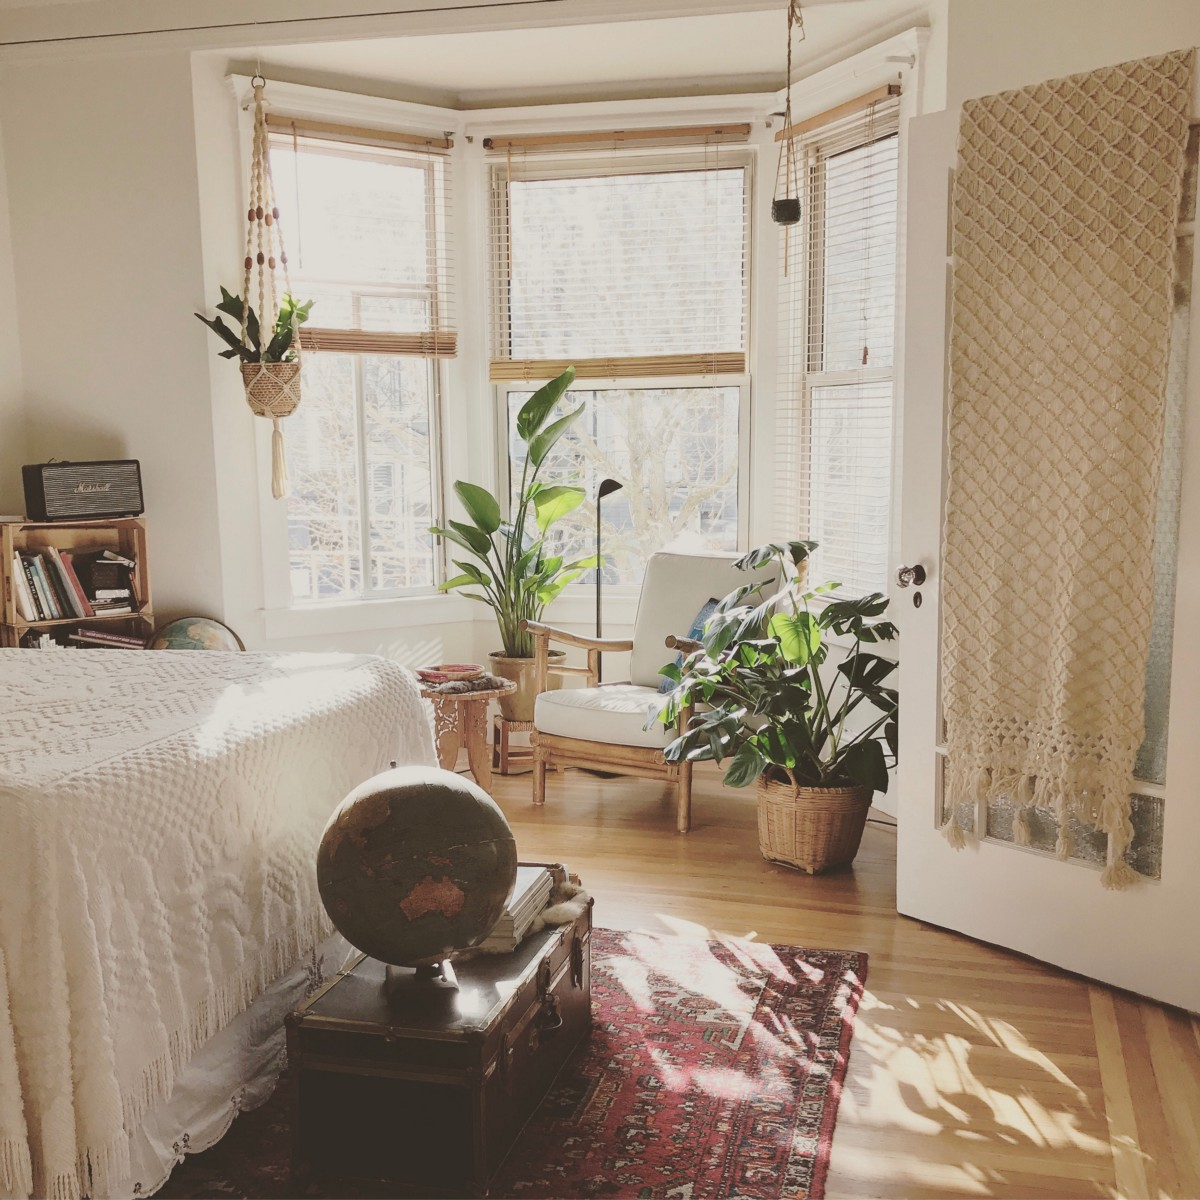 I Need Help Finding A Apartment: Finding An Apartment In Shanghai